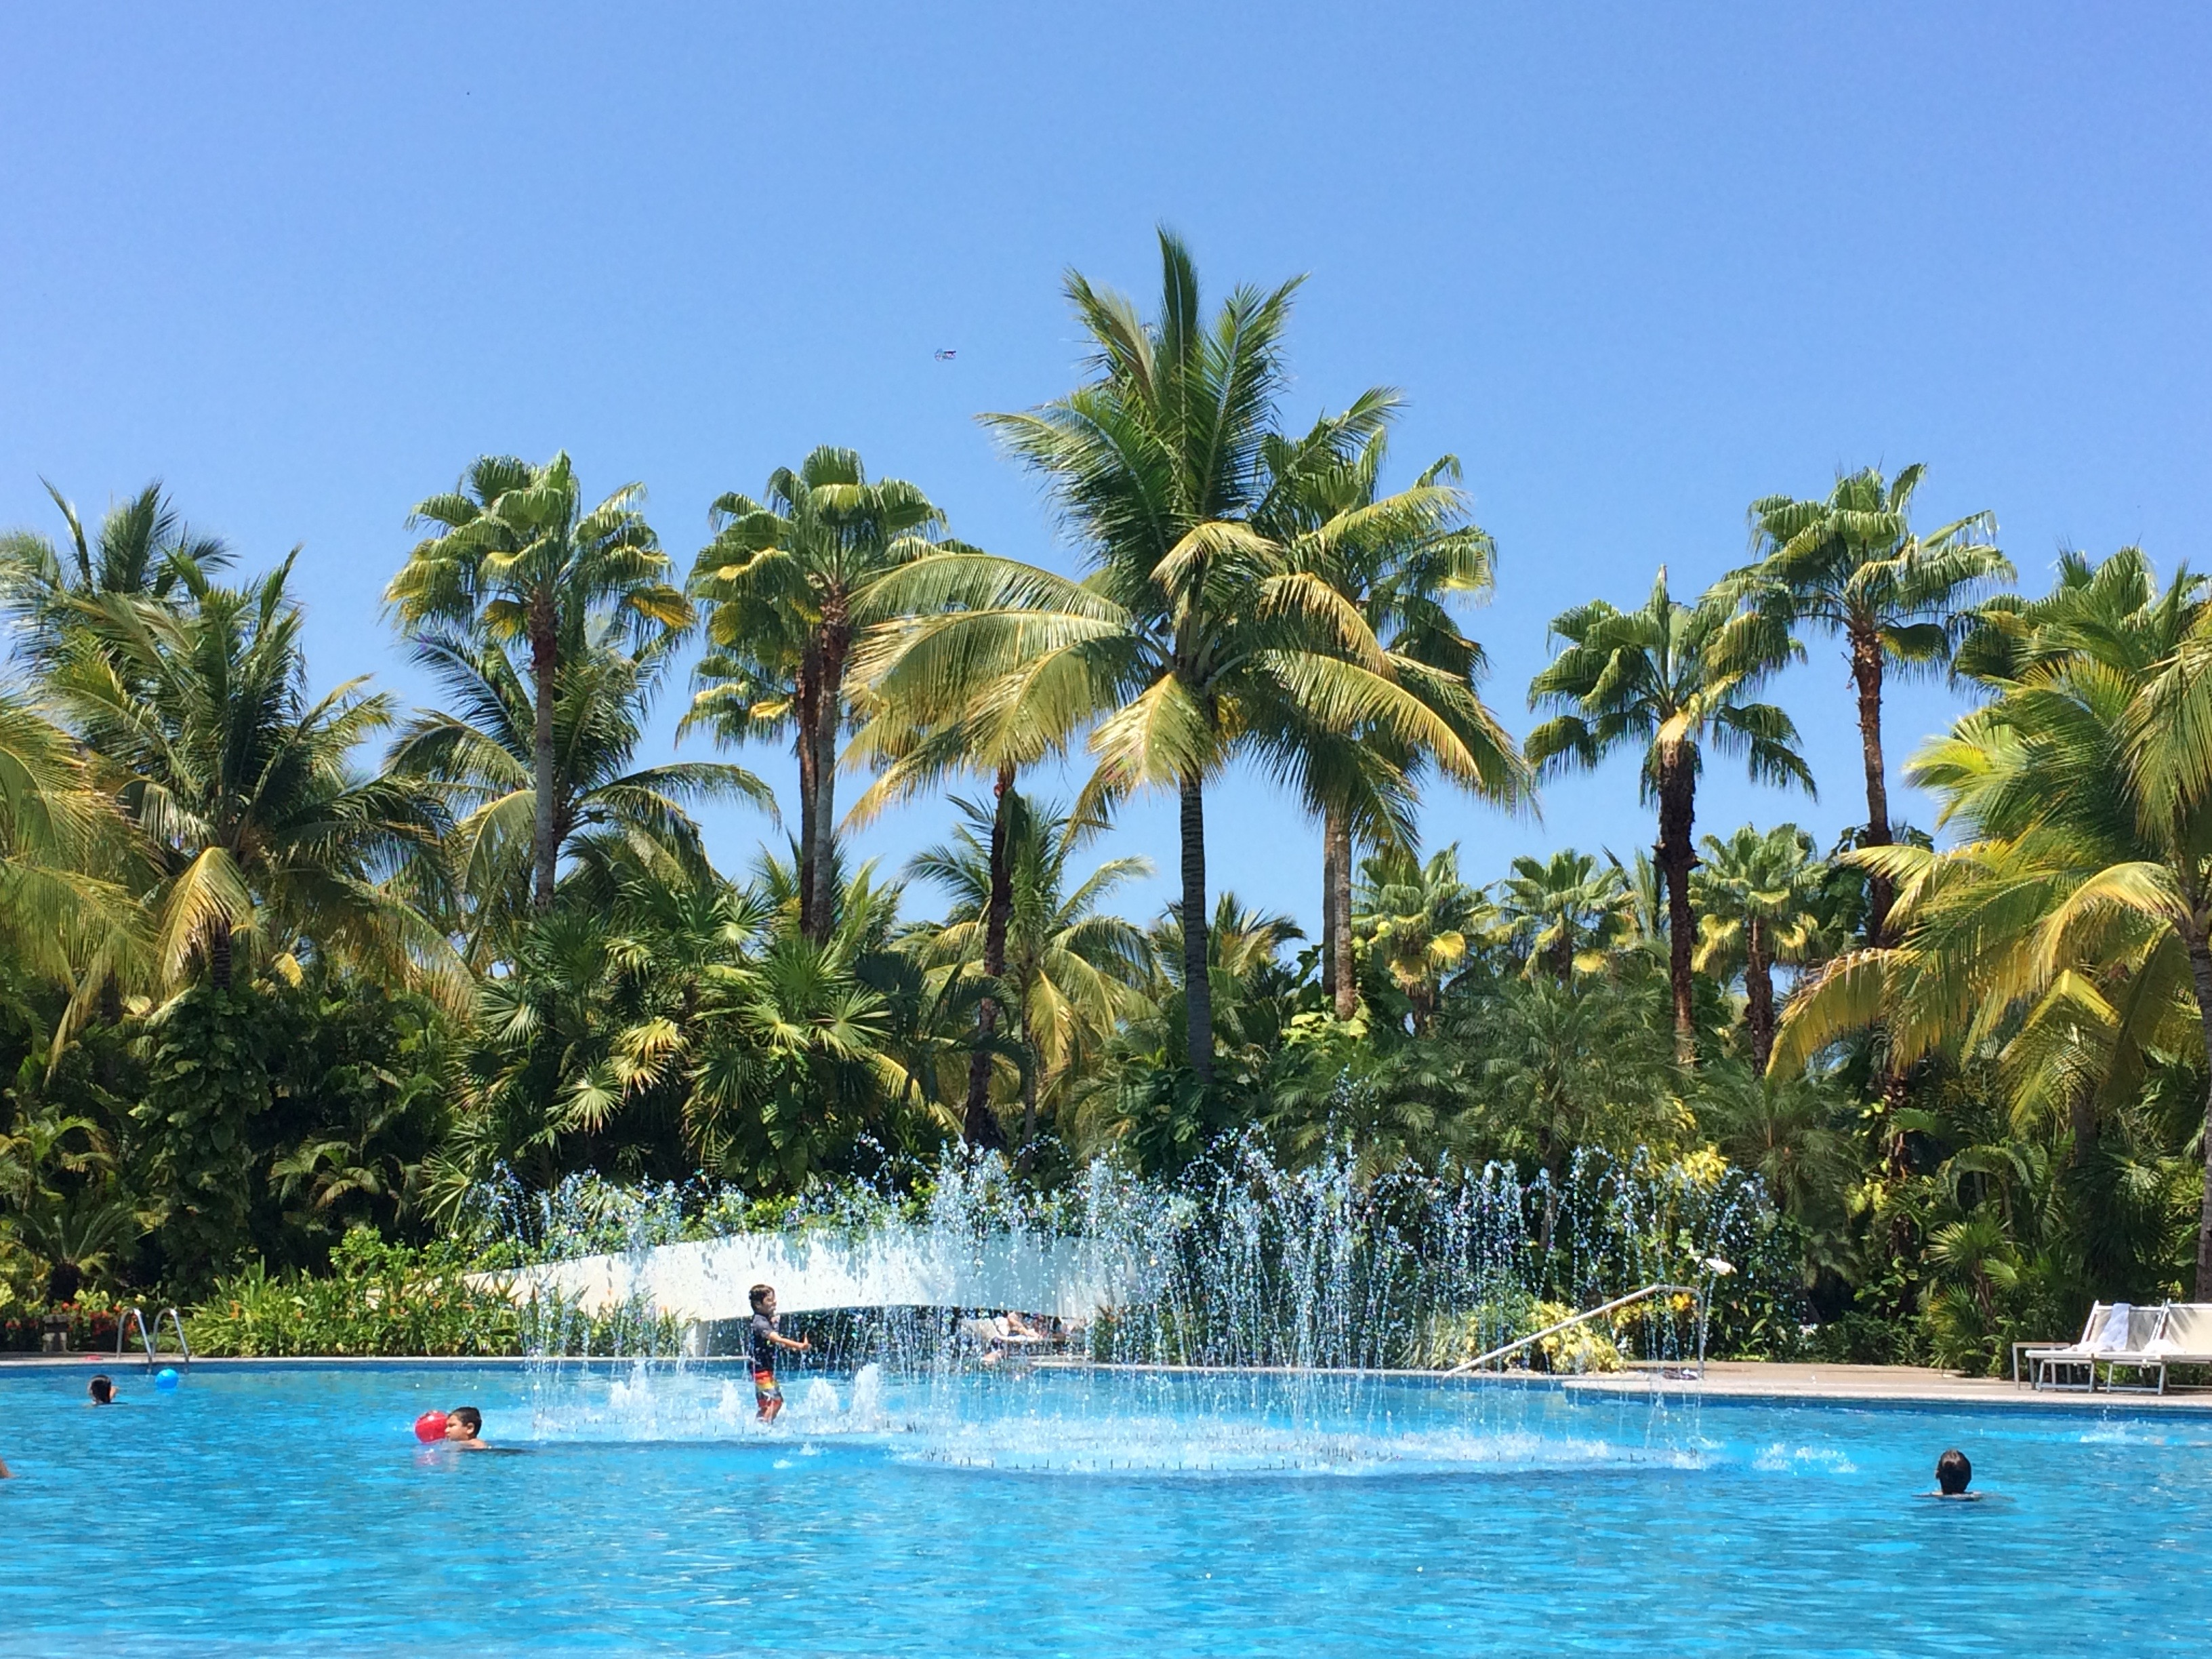 Our Week at the Grand Mayan Nuevo Vallarta